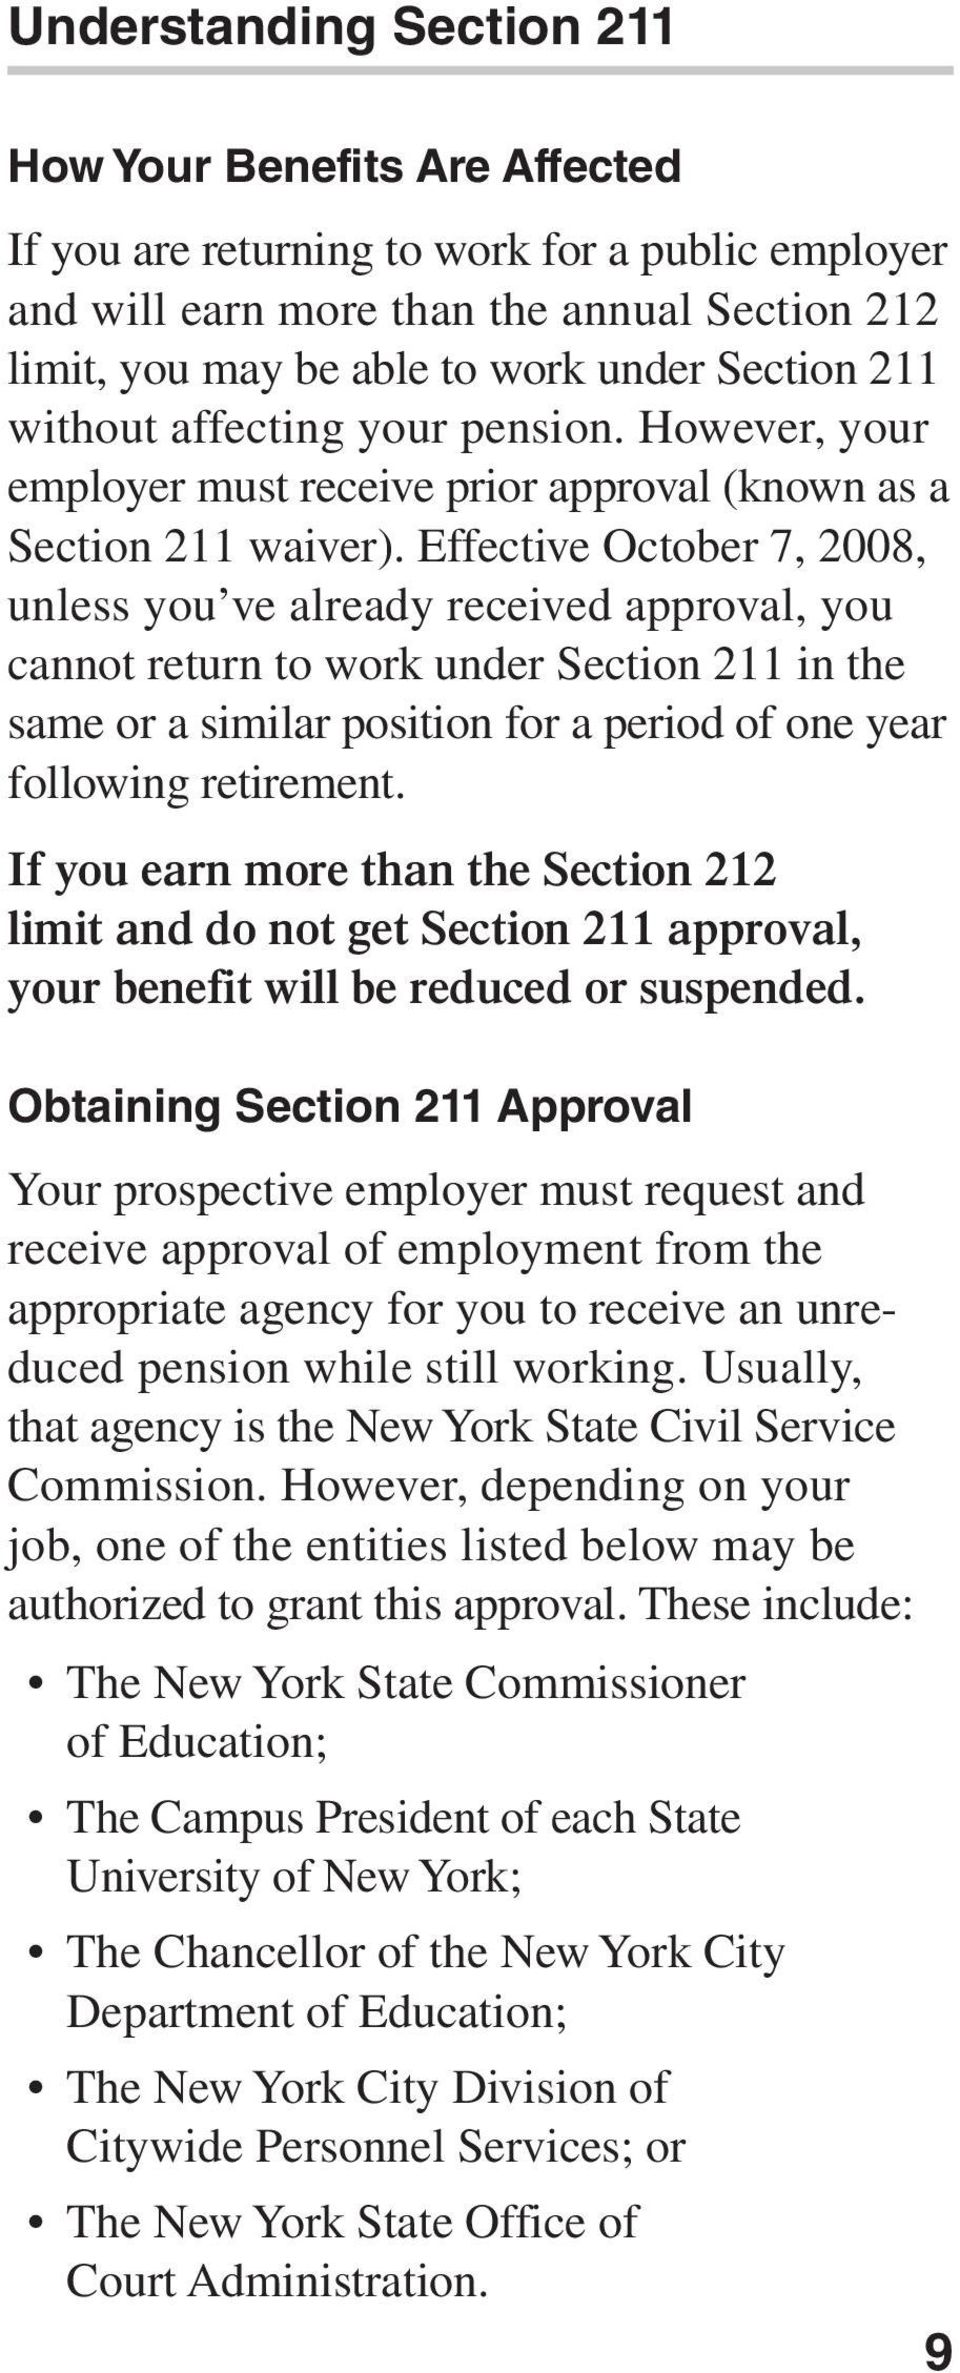 Effective October 7, 2008, unless you ve already received approval, you cannot return to work under Section 211 in the same or a similar position for a period of one year following retirement.